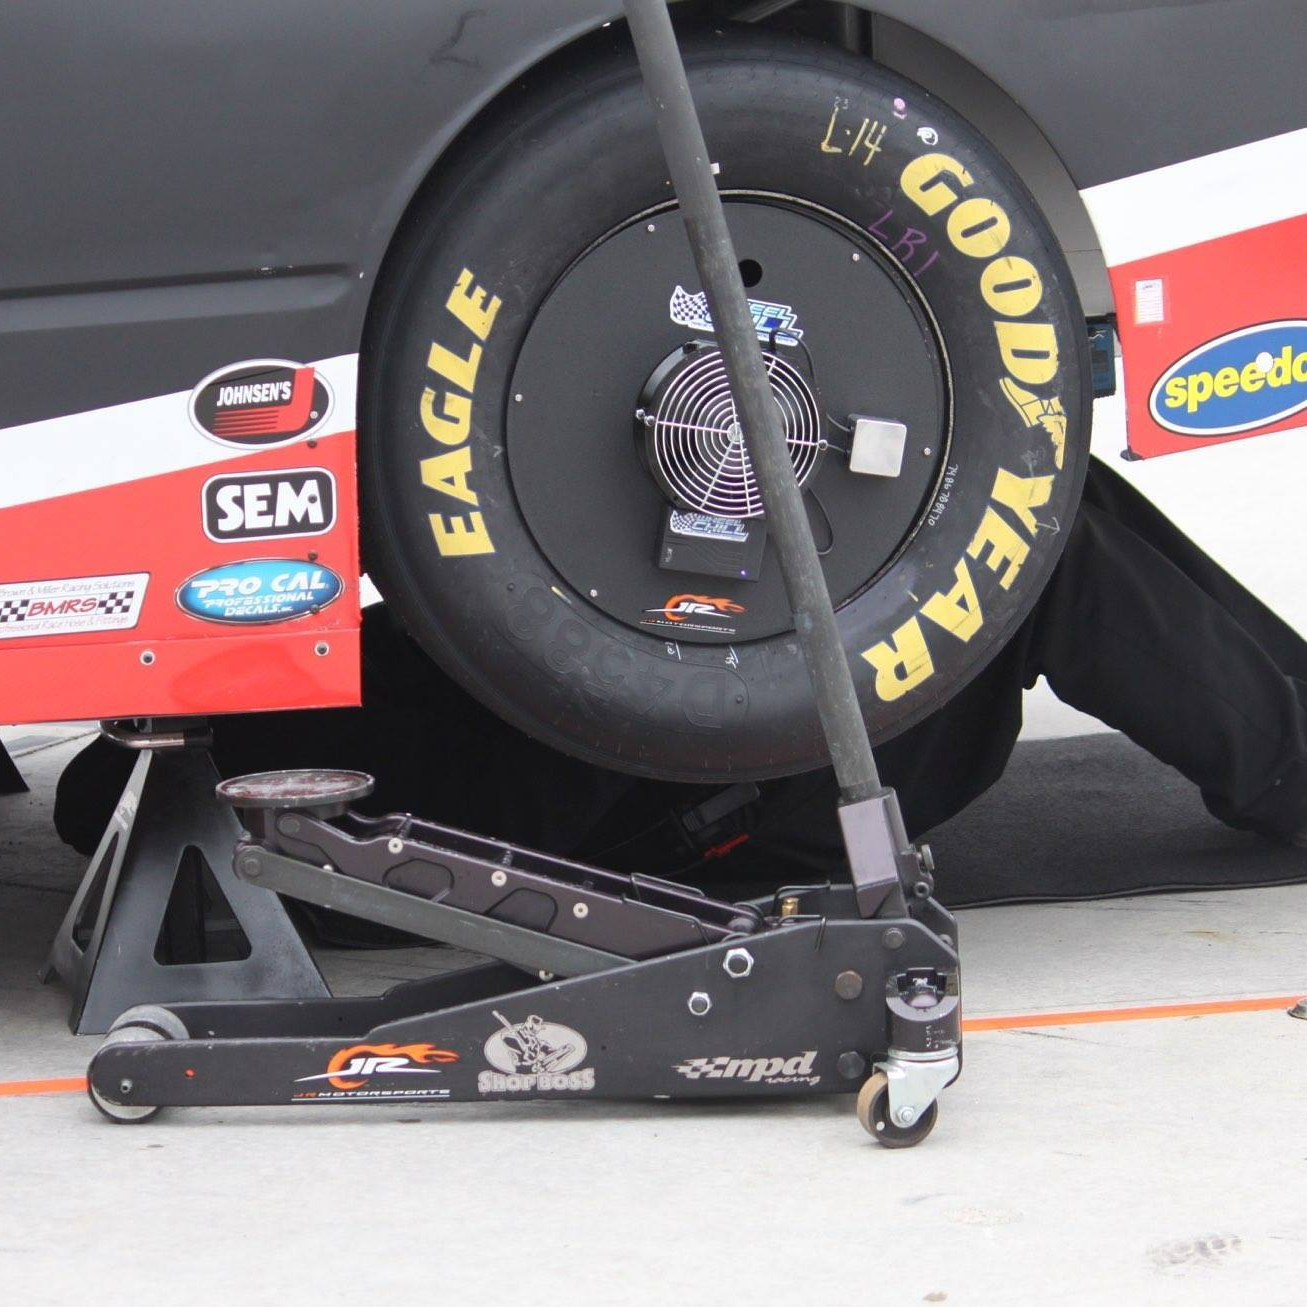 A Wireless Wheel Chill in use on a racecar that is being worked on